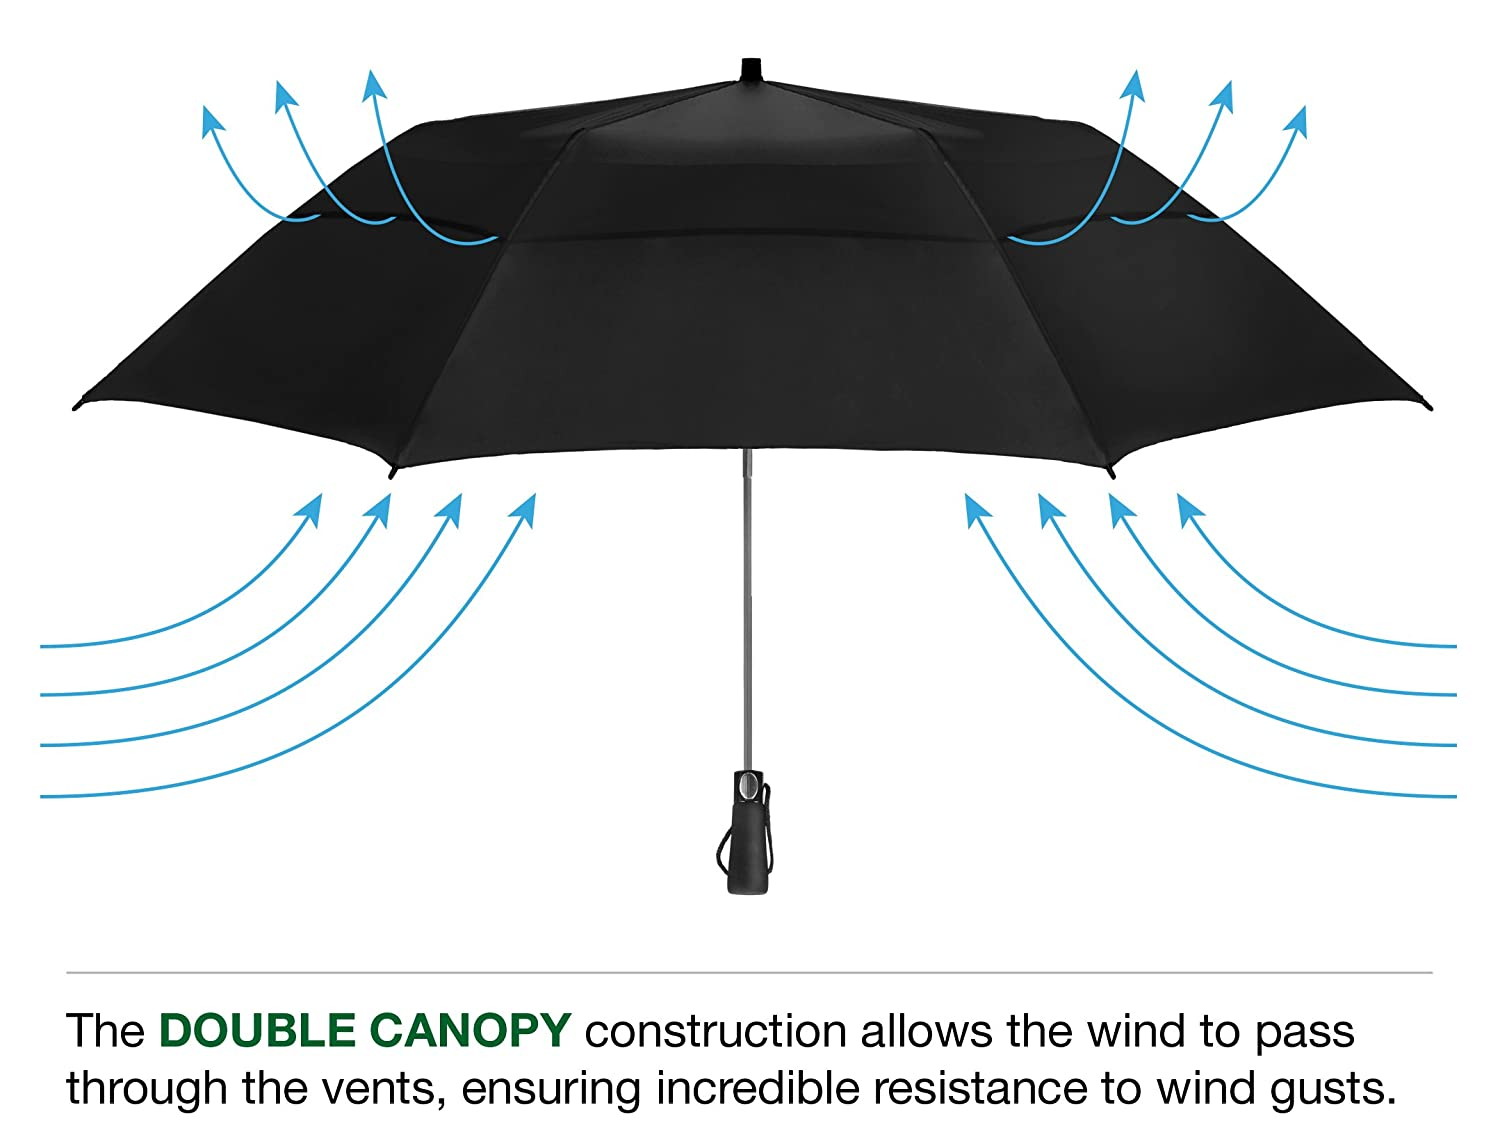 Amazon.com  EEZ-Y Folding Golf Umbrella 58-inch Large Windproof Double Canopy - Auto Open Sturdy and Portable (Black)  Sports u0026 Outdoors  sc 1 st  Amazon.com : canopy umbrella - memphite.com